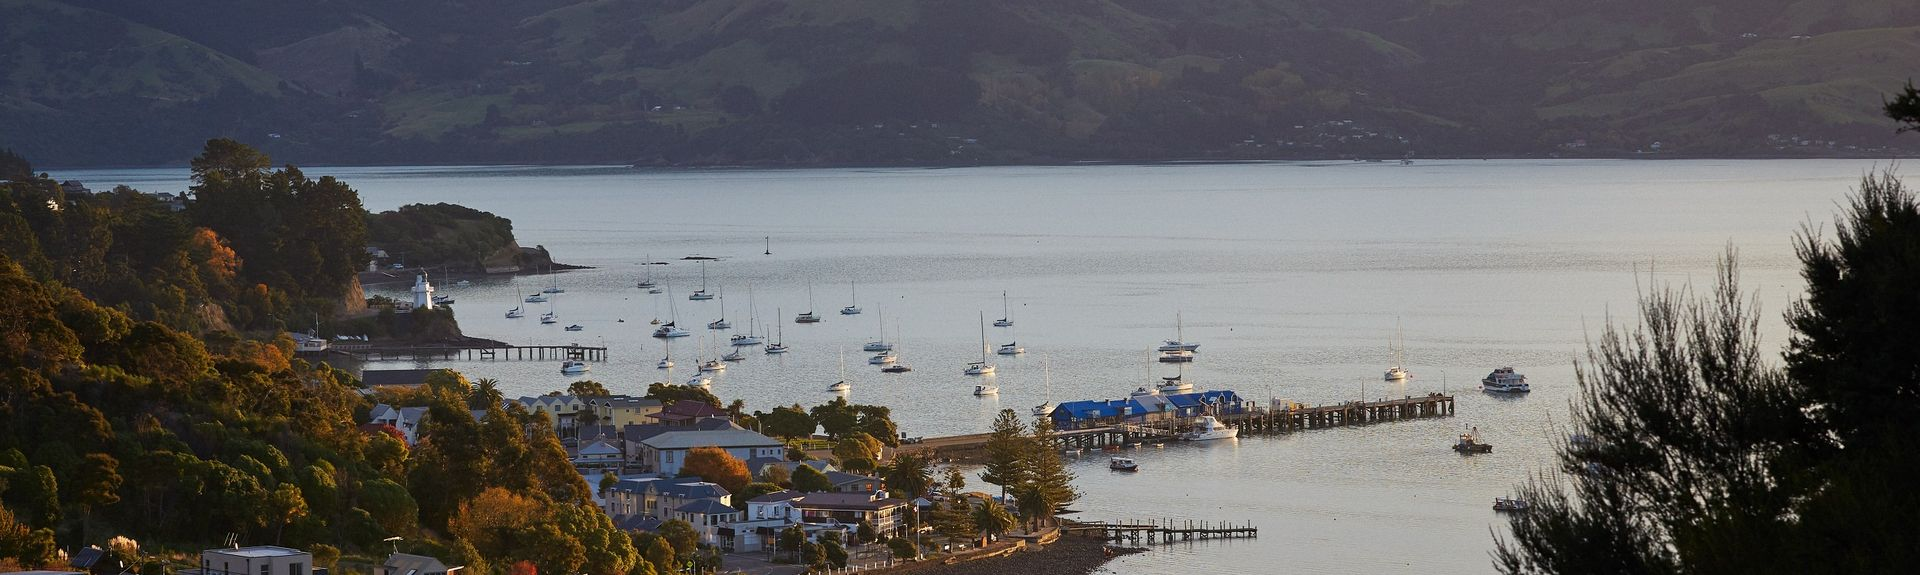 Quail Island, Christchurch, South Island, New Zealand